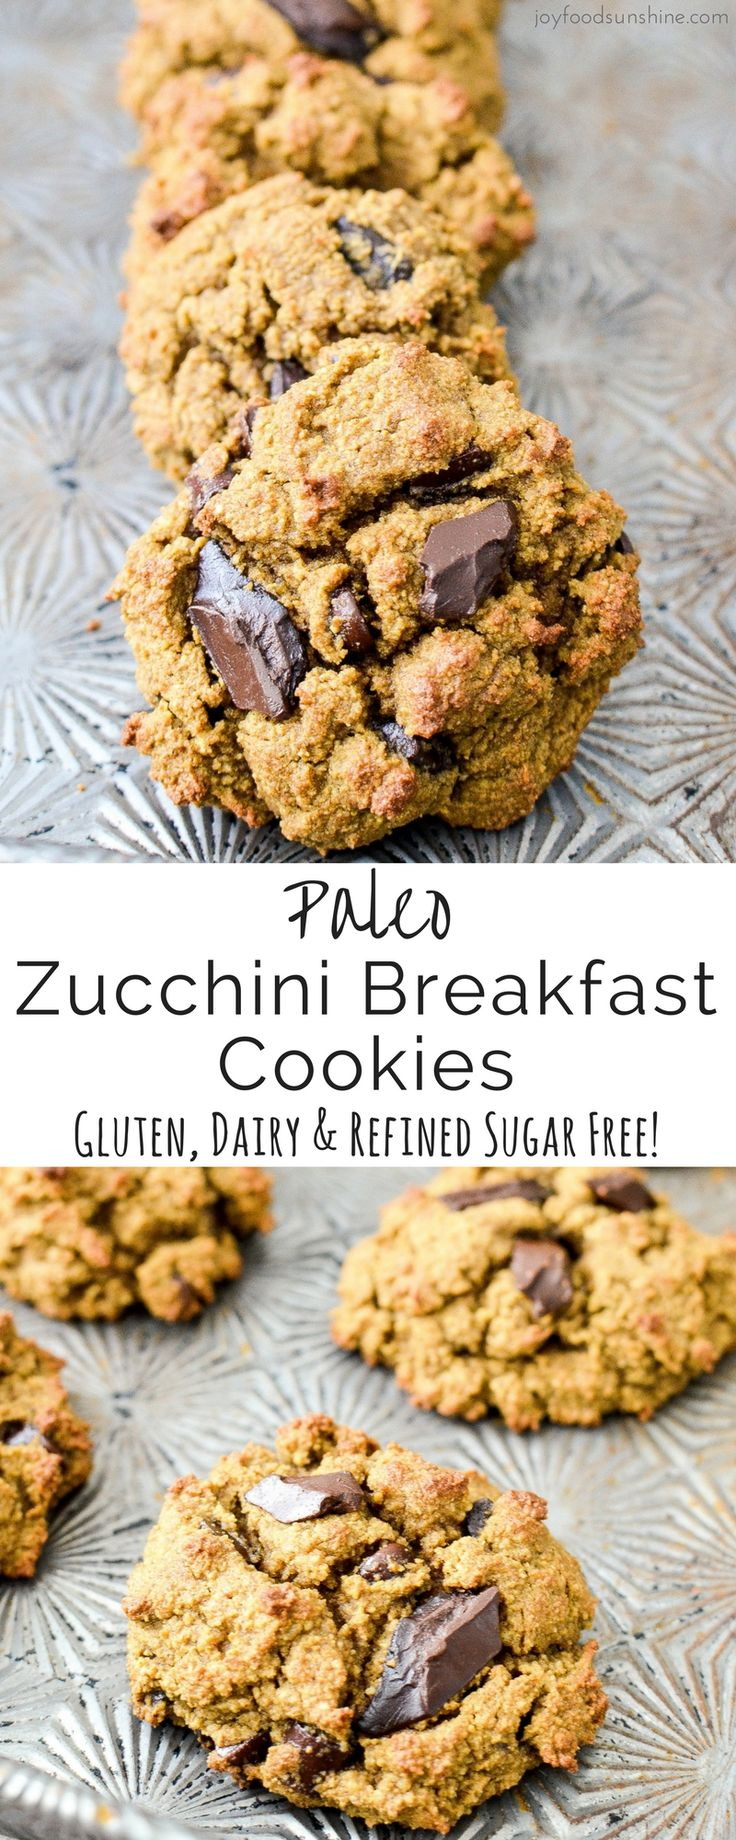 Paleo Zucchini Breakfast Cookies! A healthy and nutritious breakfast recipe loaded with sneaky veggies that tastes like dessert! Gluten-free, dairy-free & refined sugar free!